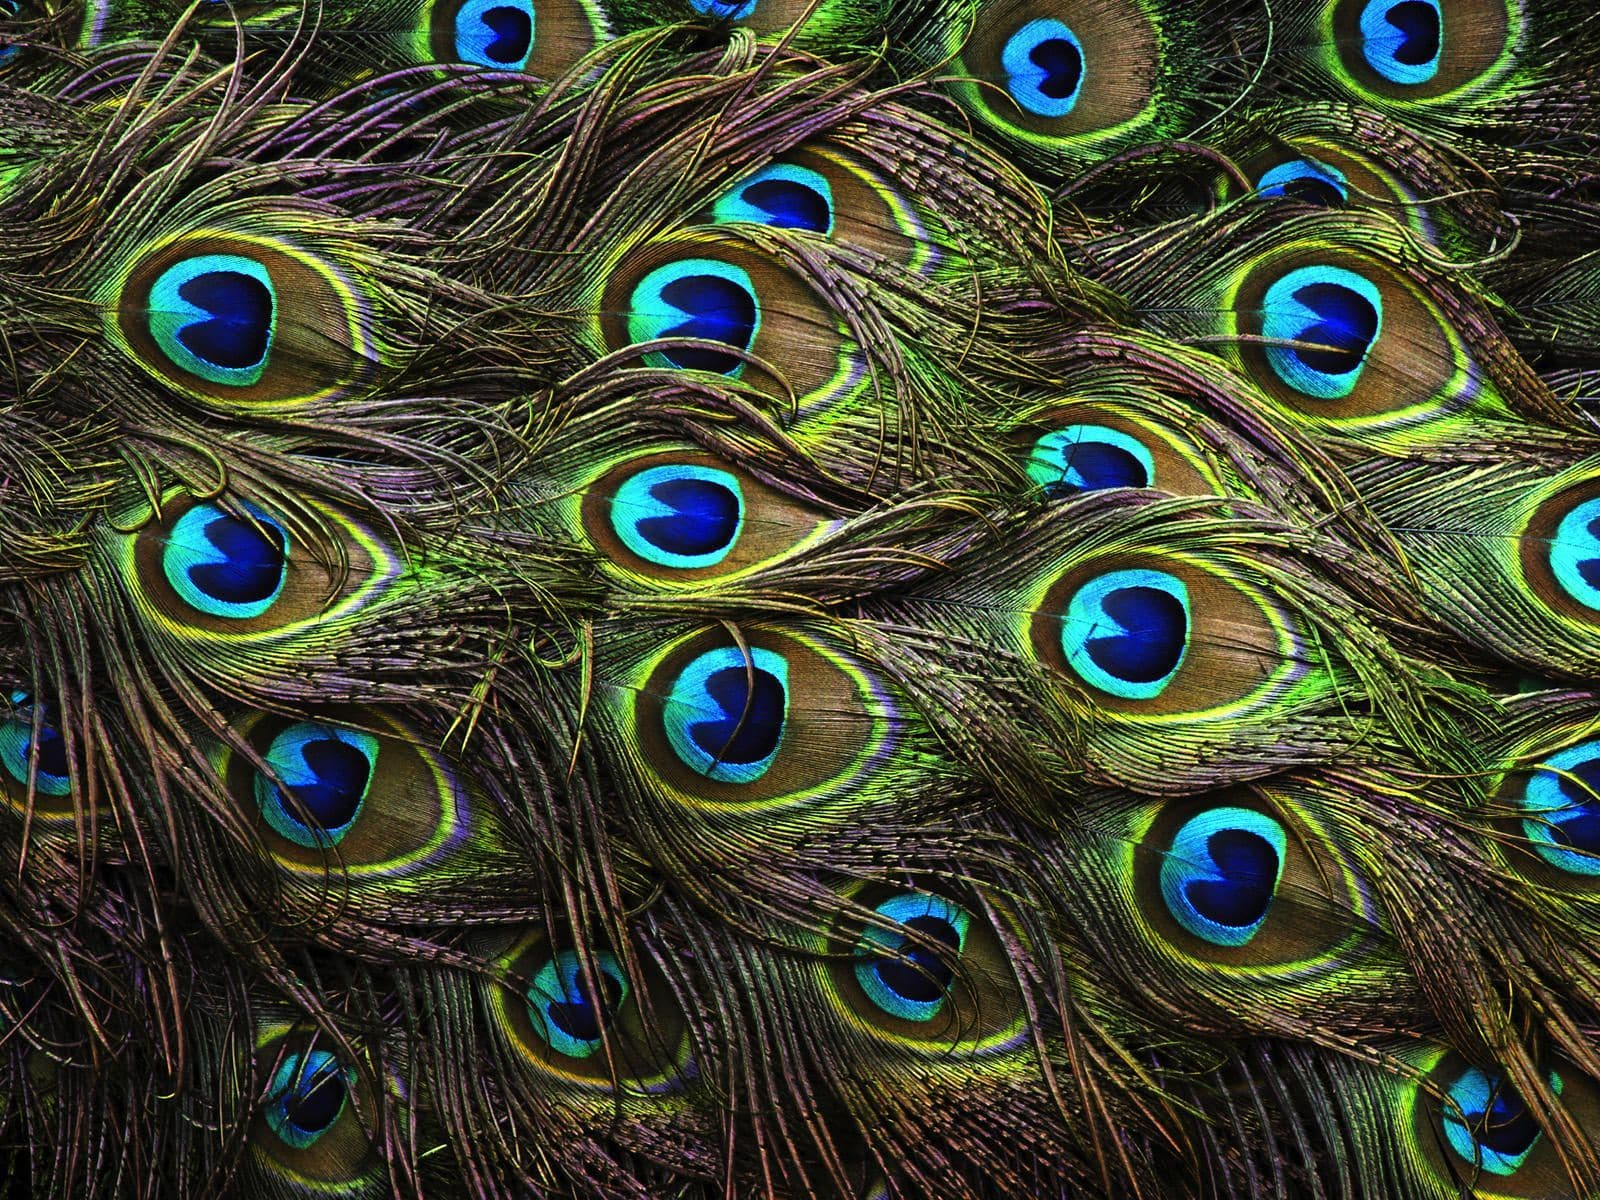 Peacock widescreen wallpapers